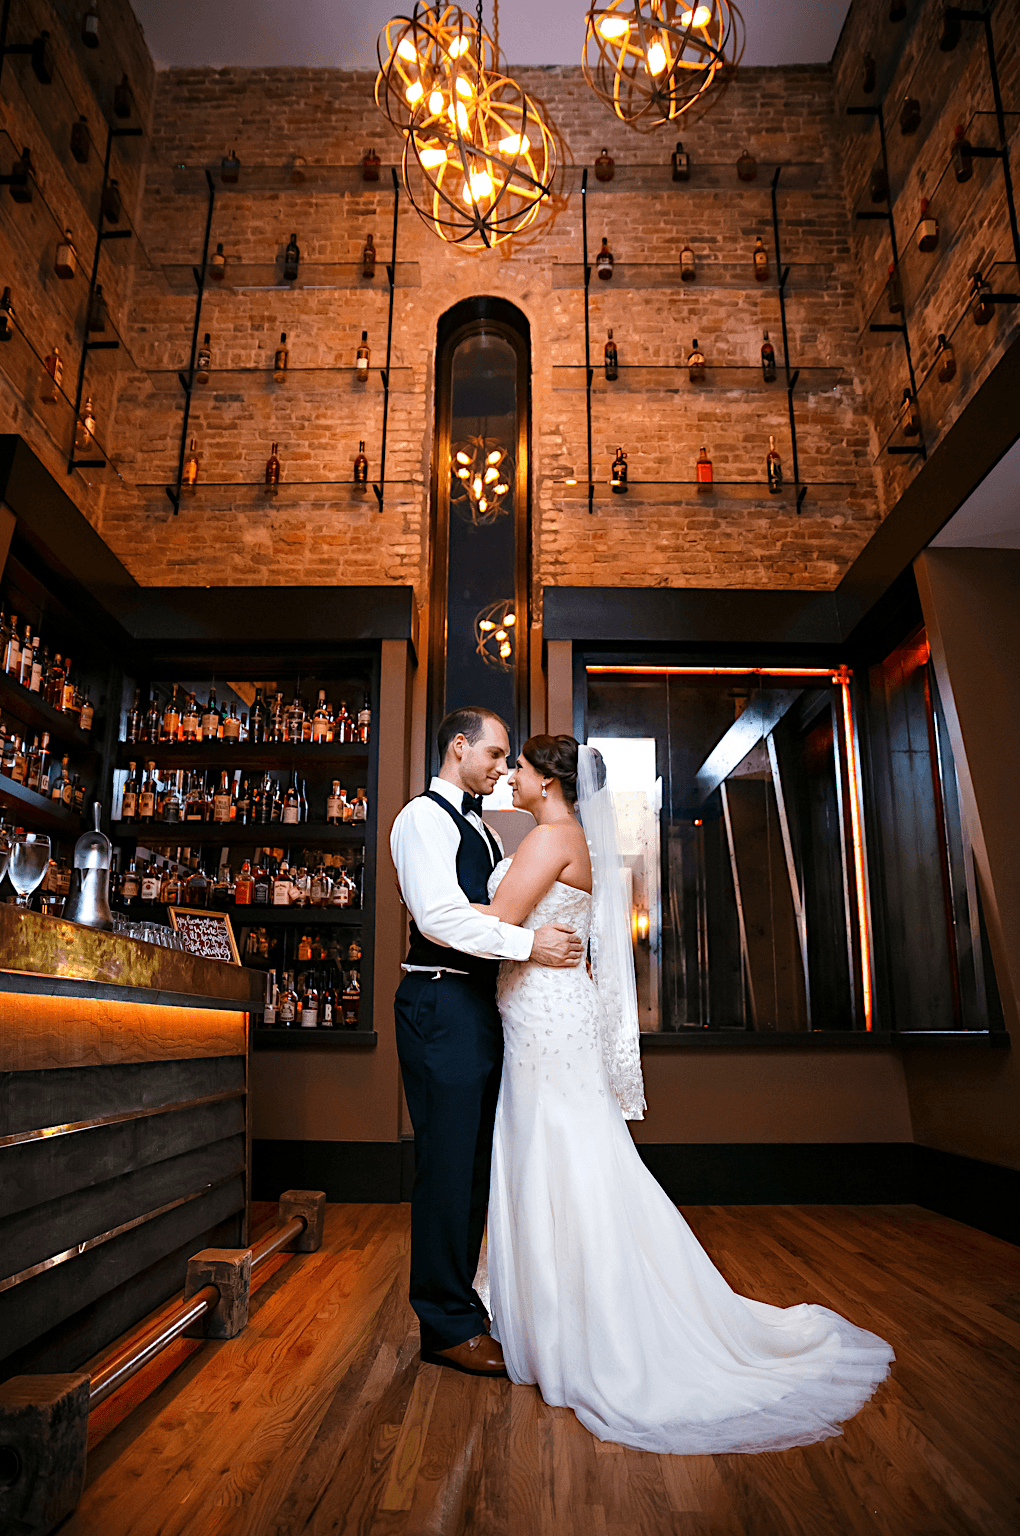 055-The_Bell_Tower_Nashville_Wedding_Stevie_Ramos_Photography-compressor